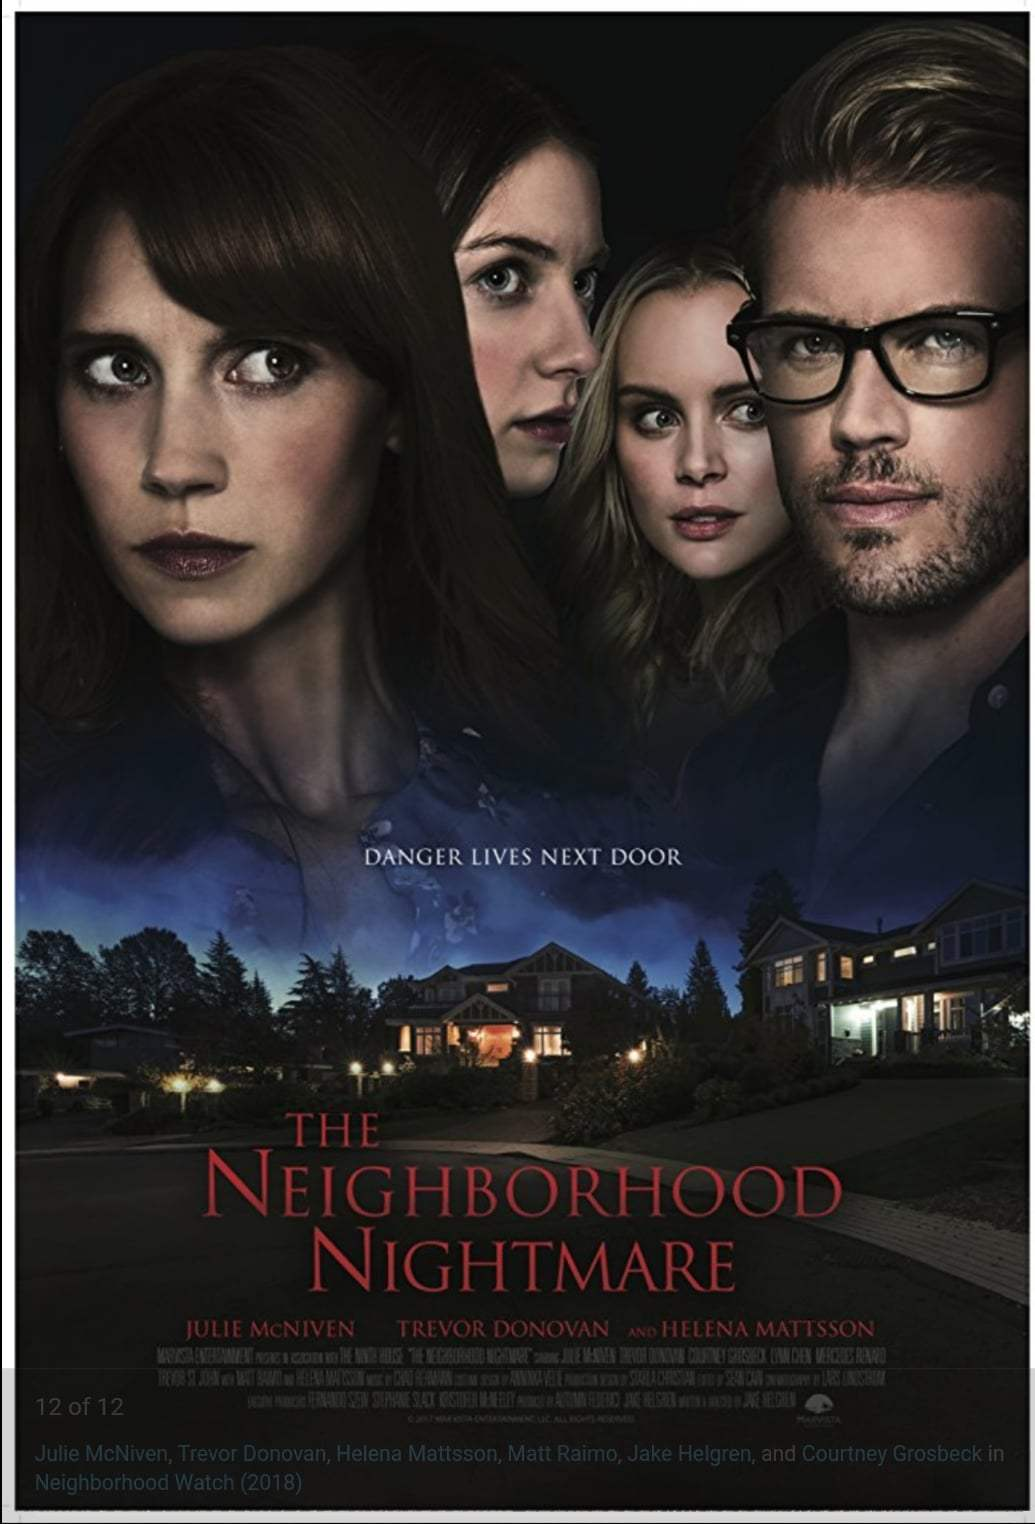 The Neighborhood Nightmare